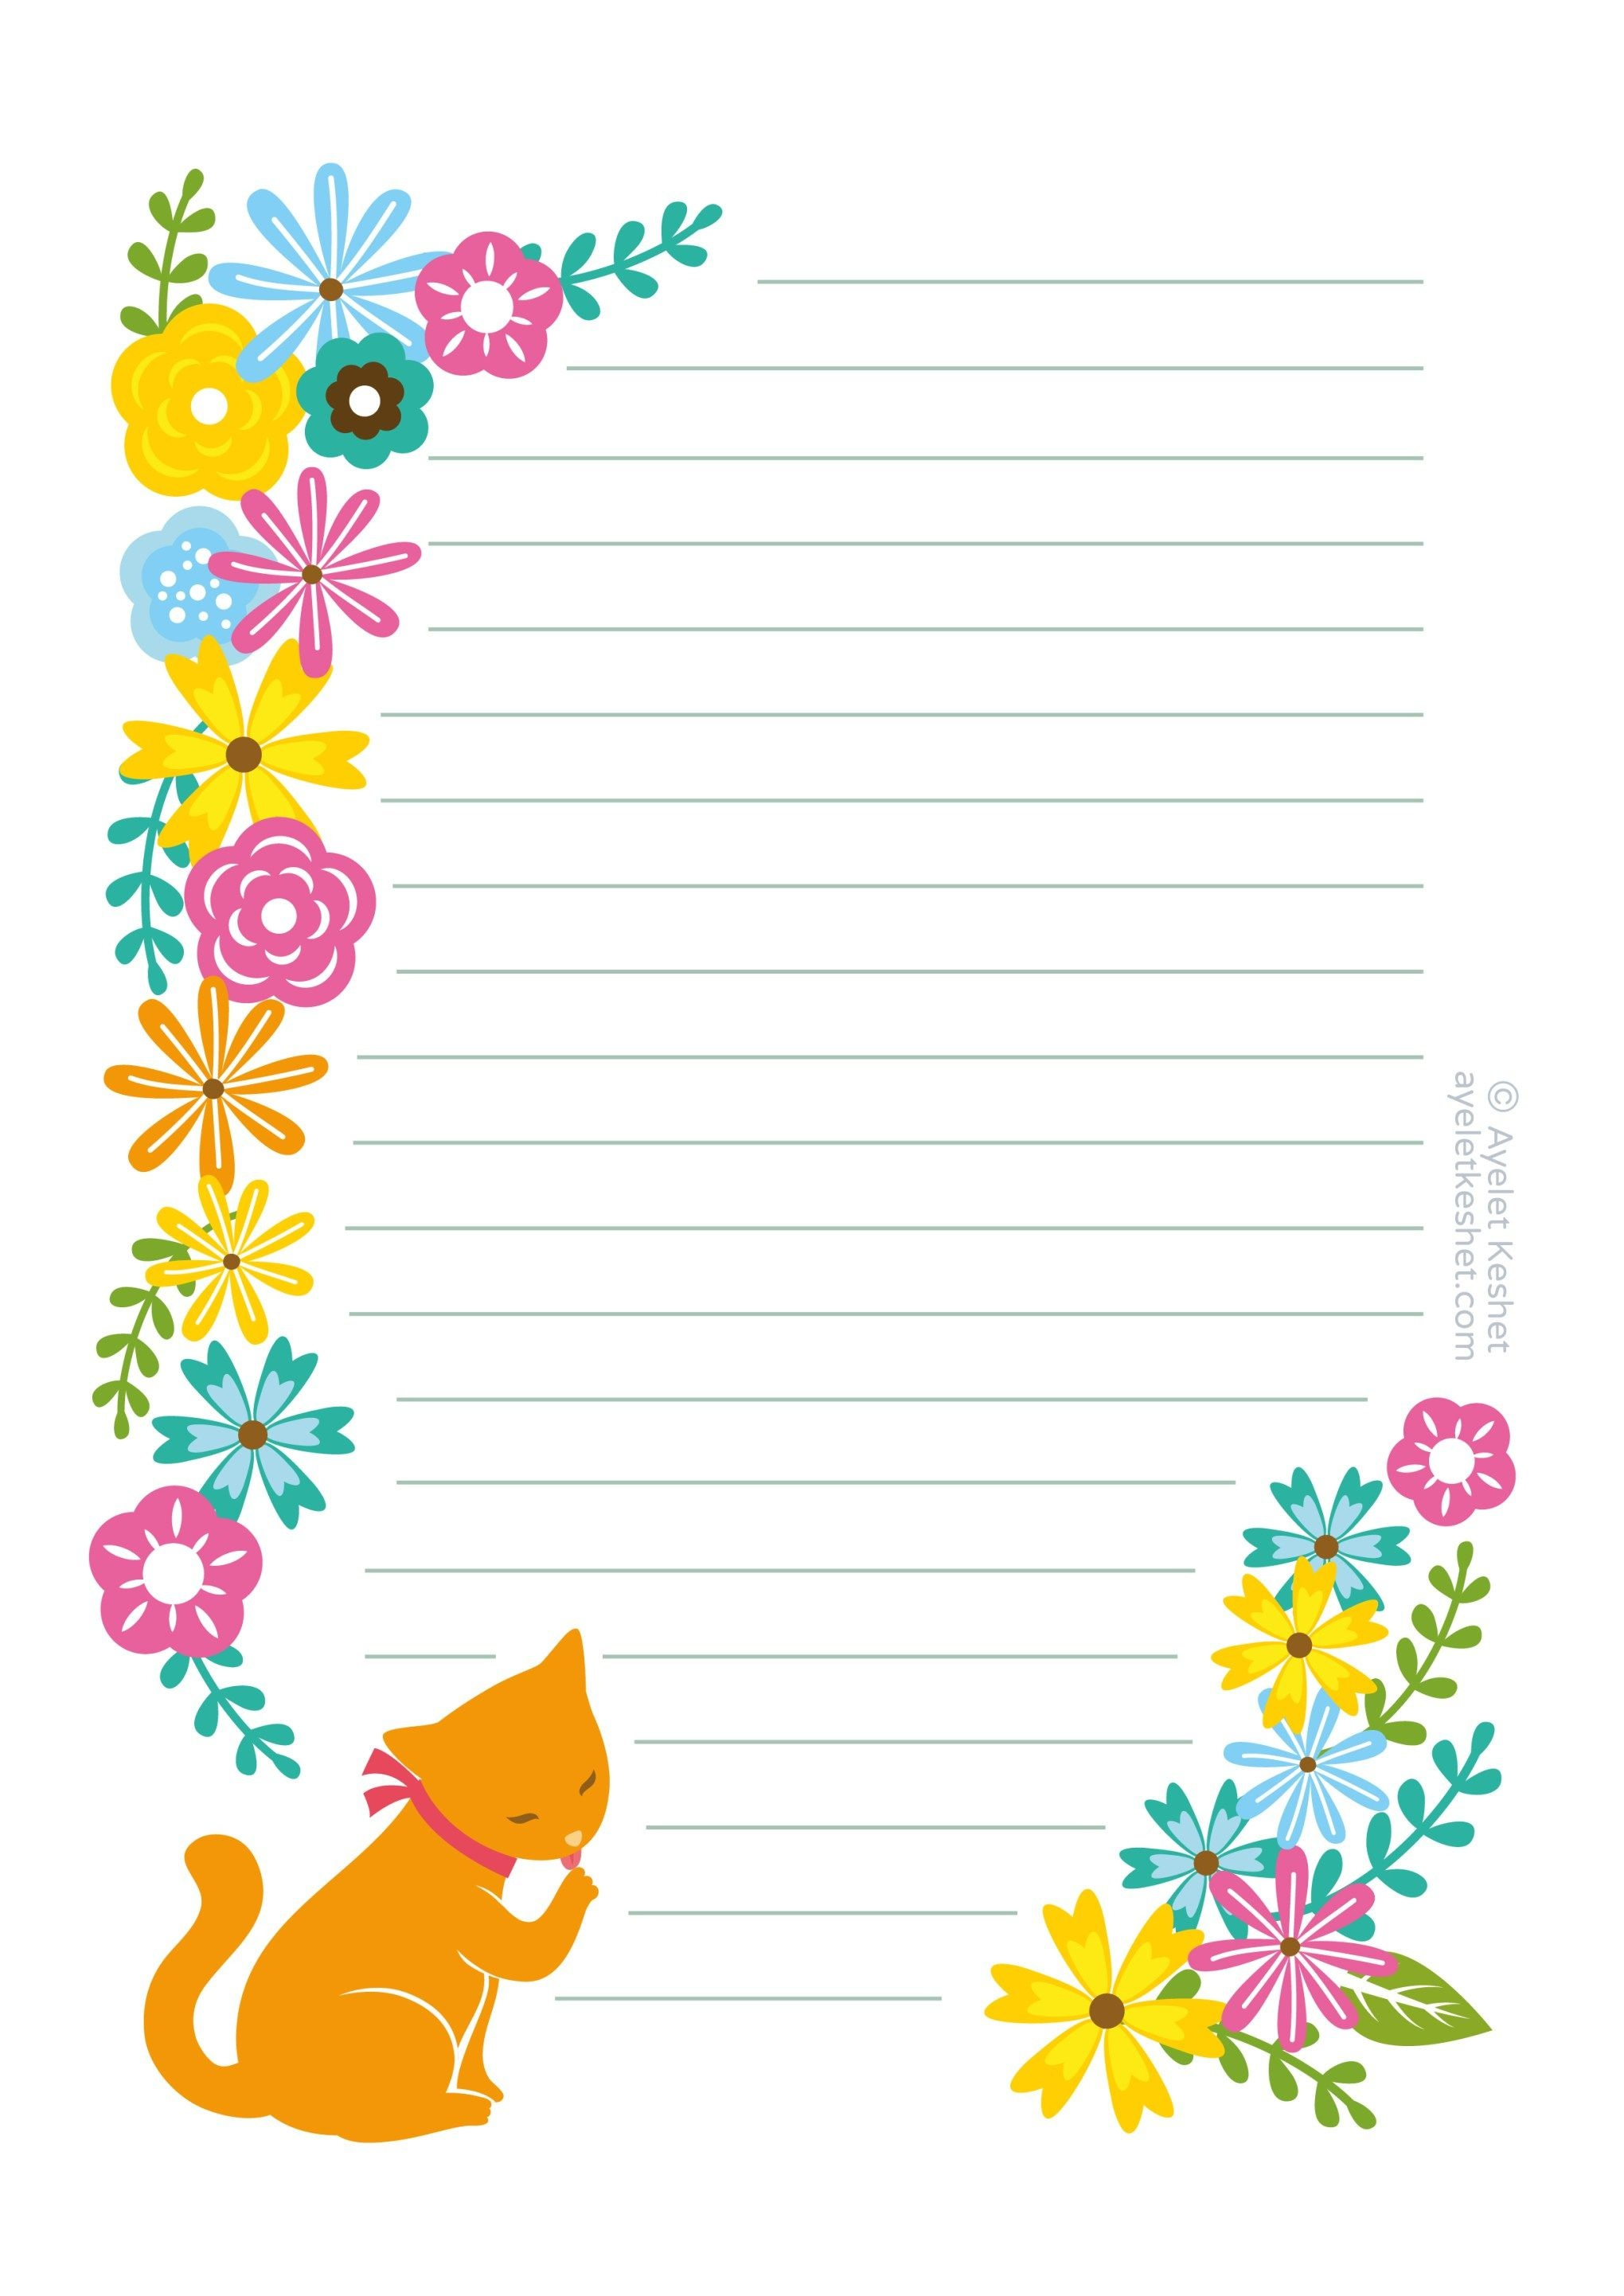 Free Printable Letter Paper   Printables To Go   Free Printable - Free Printable Stationery Pdf